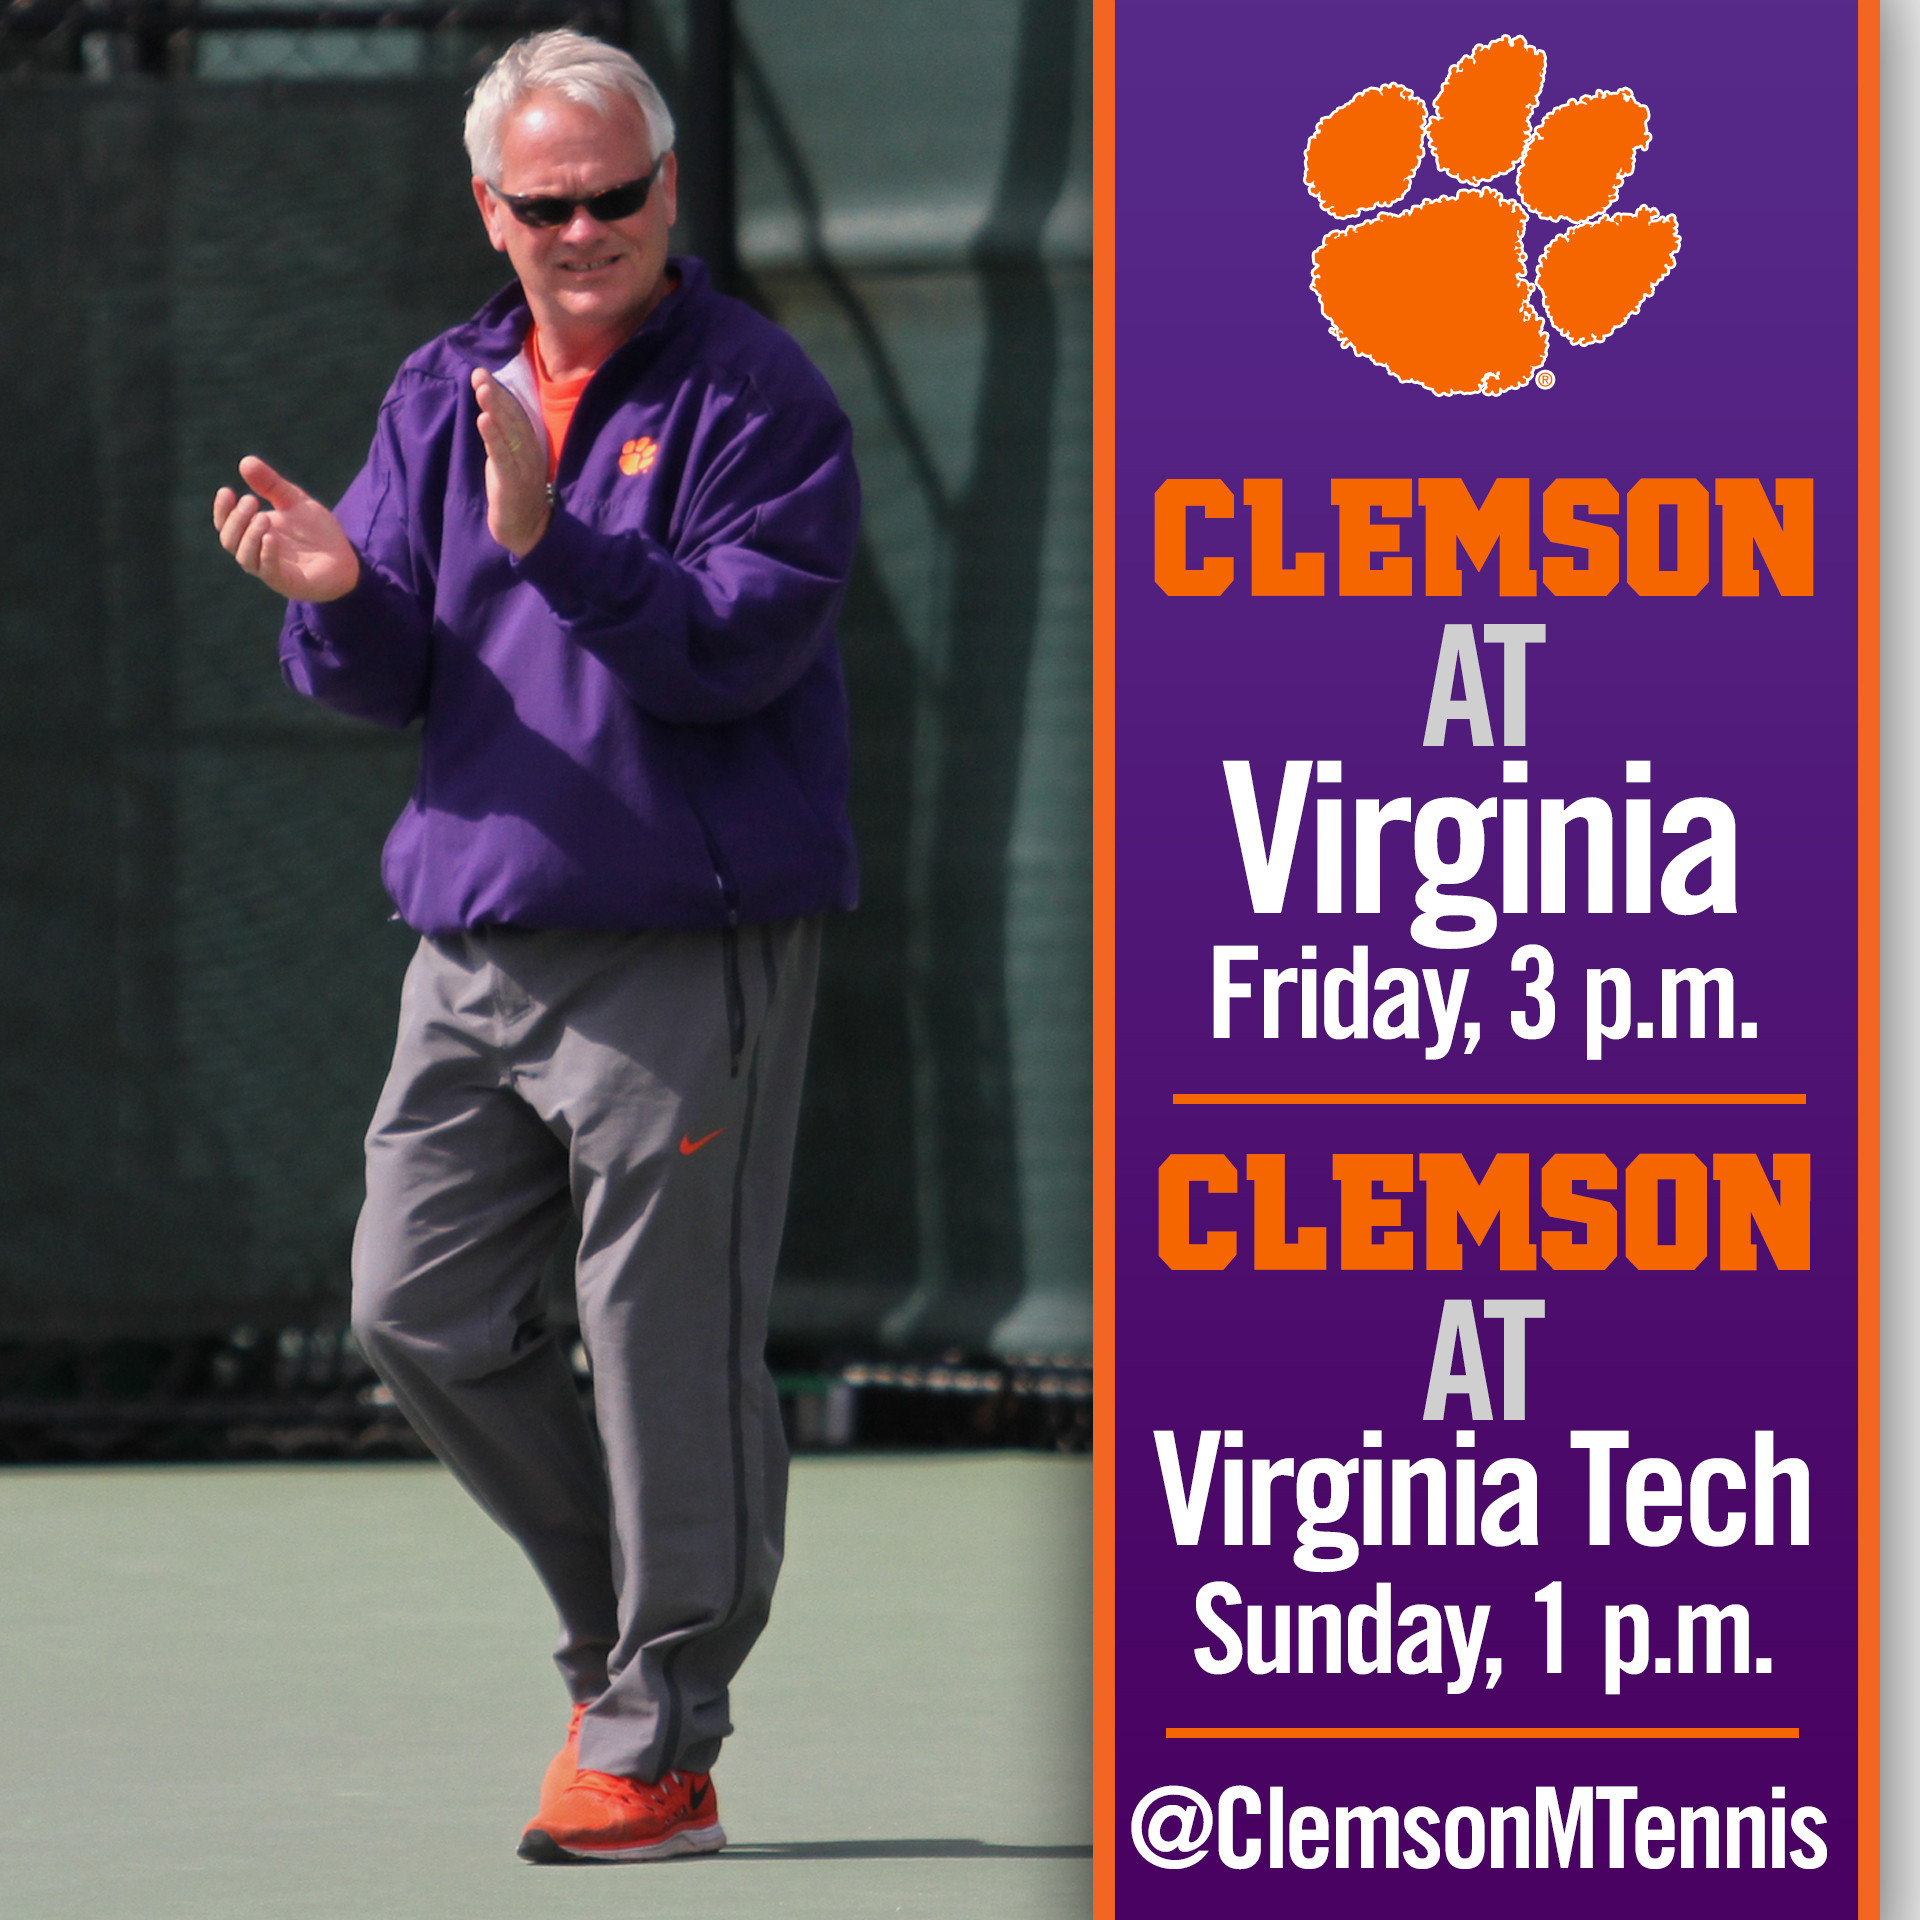 Clemson Heads North to Face No. 7 Virginia, No. 15 Virginia Tech This Weekend